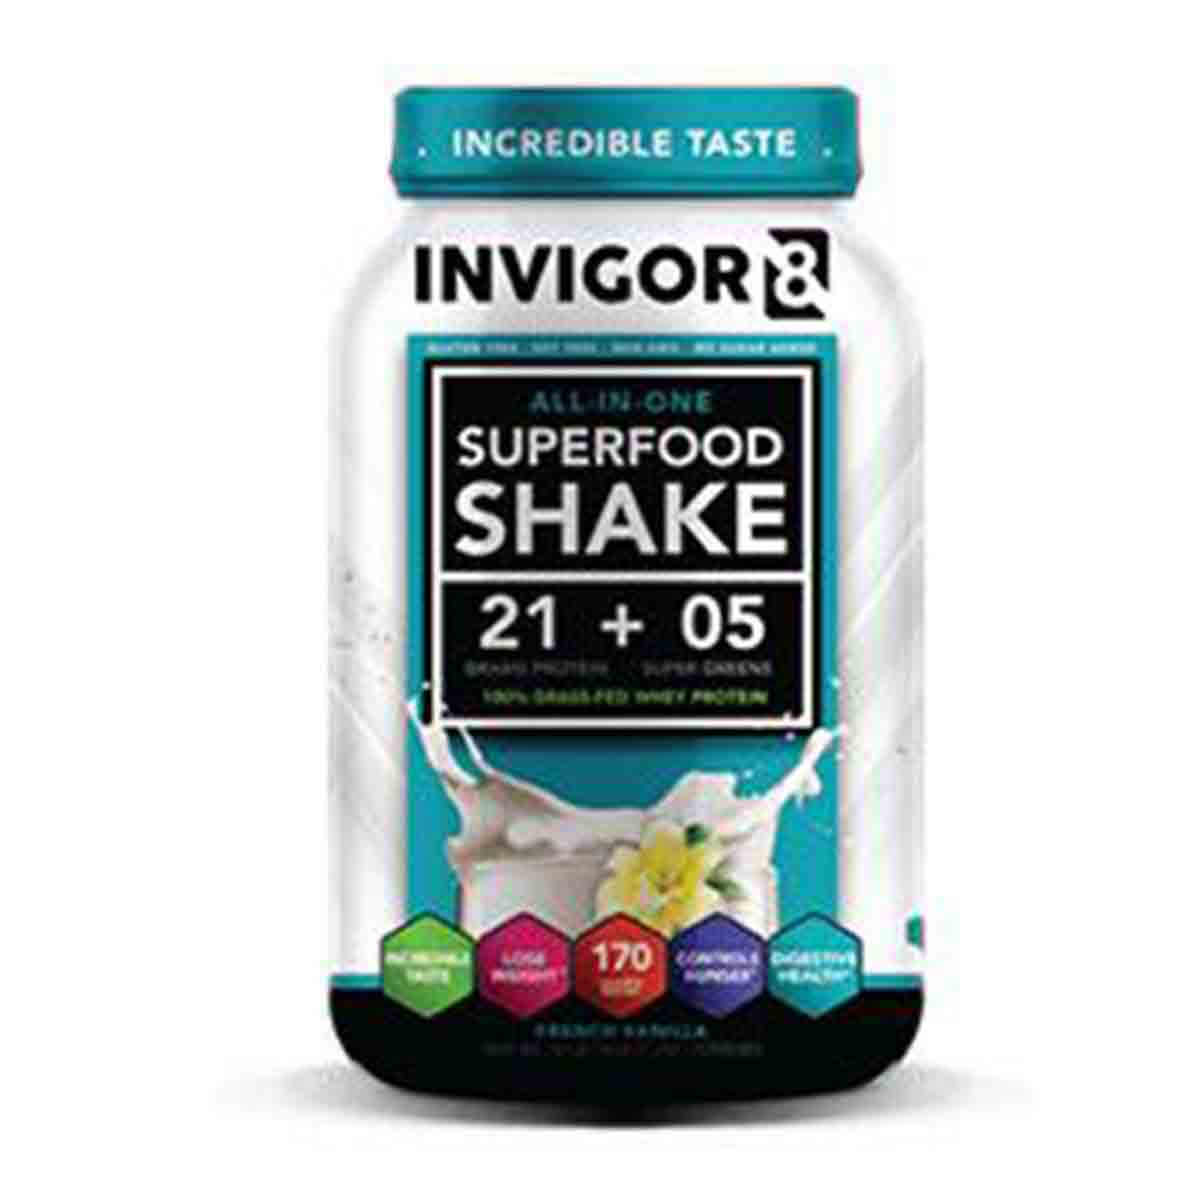 Invigor8 Superfood Shake